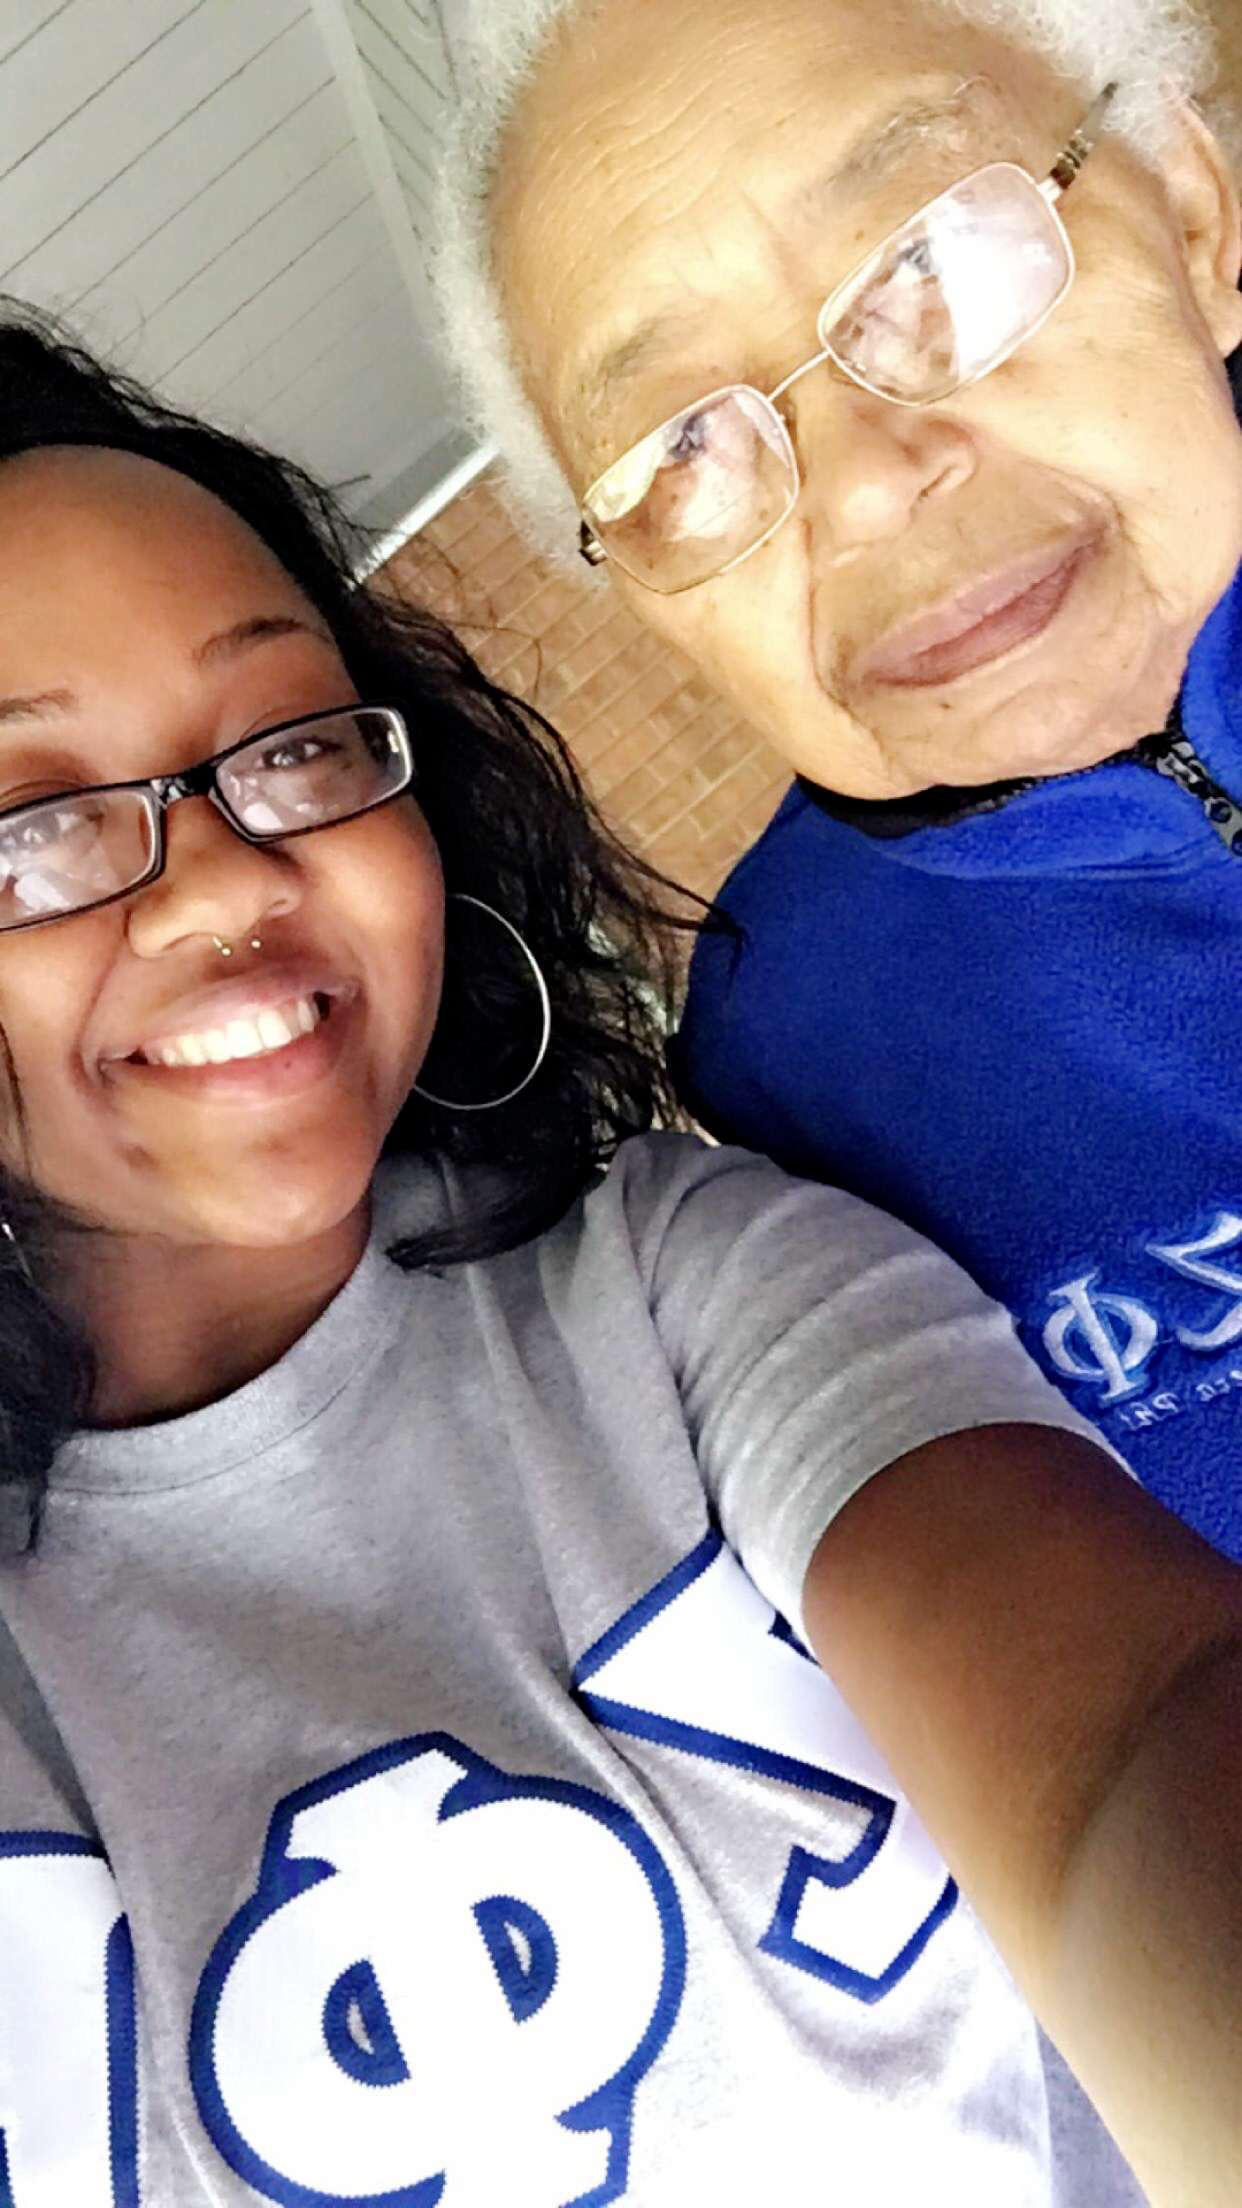 I remember when I first met Mrs. Perle back in 2017 when I volunteered for a zhope  project with my under graduate chapter at that time Phi Pi💙🕊 and we instantly connected. She was such a sweet lady and will truly be missed.  I received a job at (Shadow Oaks) a couple months later and every day she would ask about my ZΦΒ bracelet and if  I was a zeta or from Conway. She was truly a blessing to me and the highlight and joy of all of my shifts. May she rest in peace. Love you always triumphant Soror Hickman🙏🏾